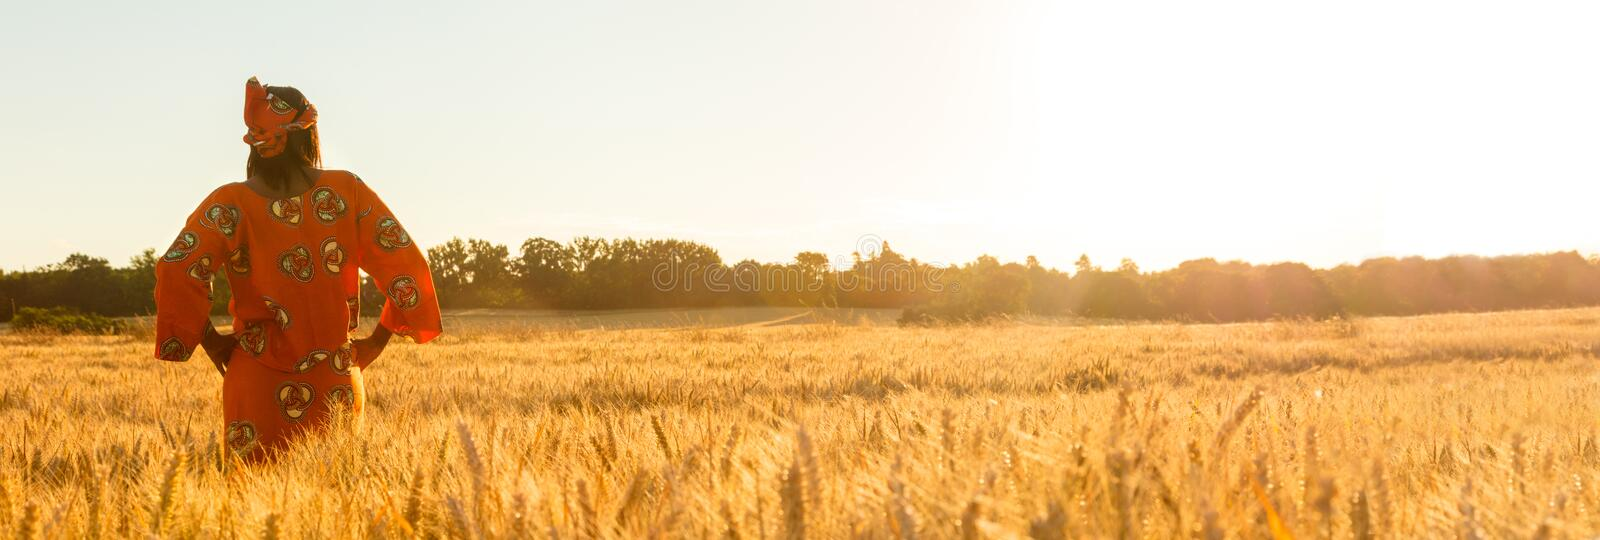 Panoramic web banner African woman in traditional clothes standing with her hands on her hips in field of barley or wheat crops at stock image